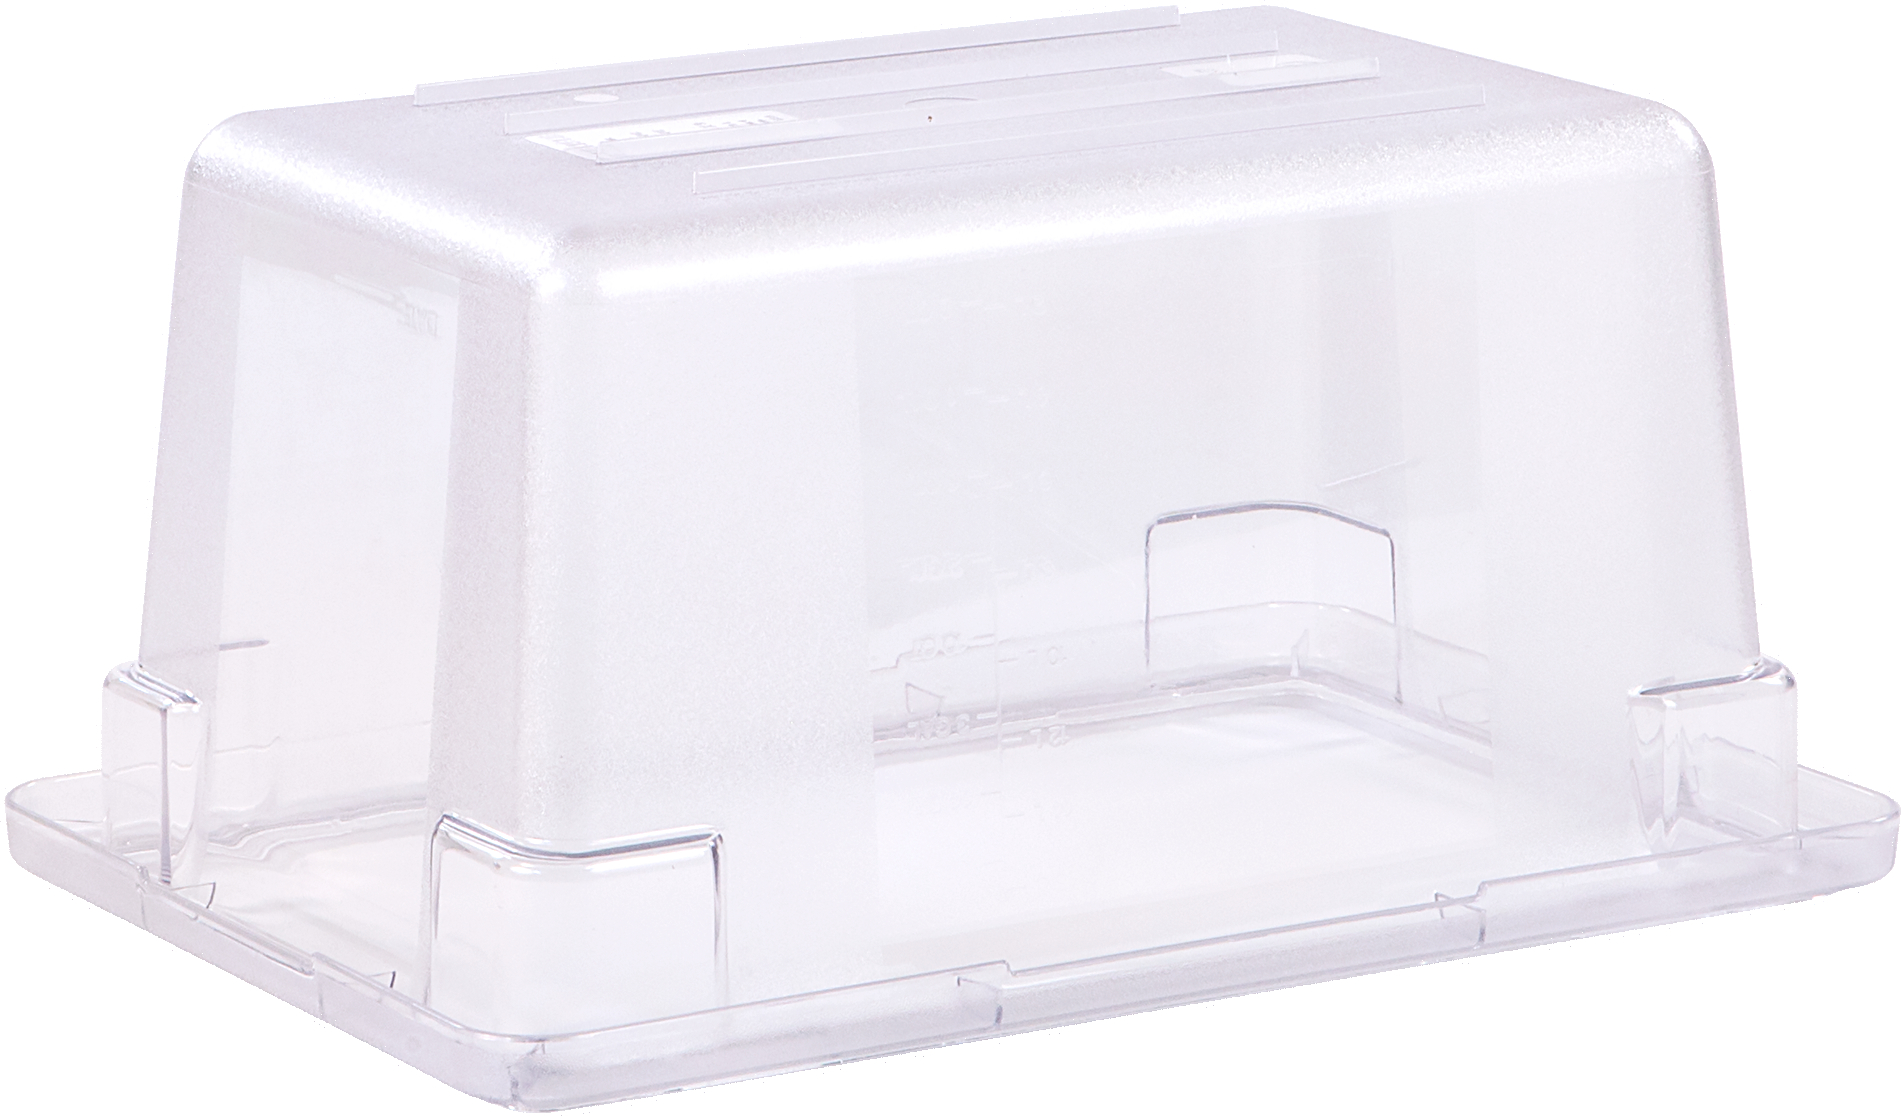 1061207 Storplustm Polycarbonate Food Box Storage